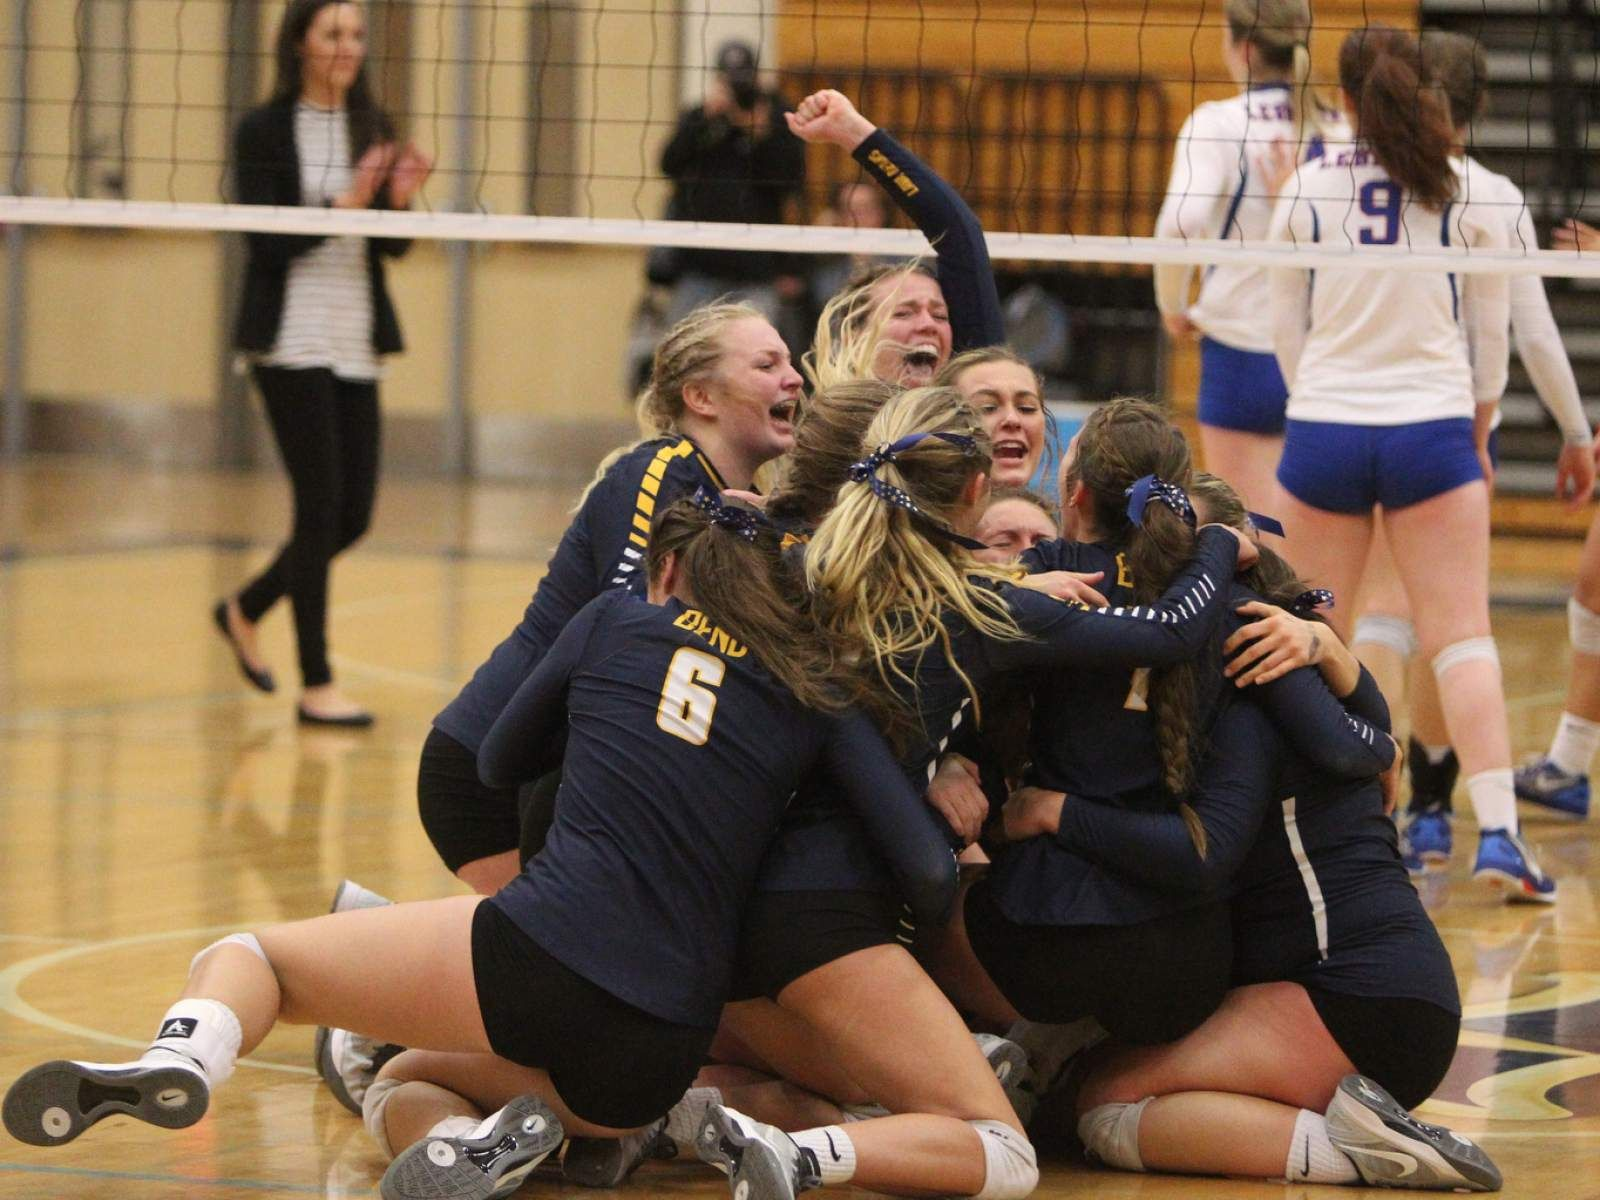 Bend Players Dogpile On The Court After Winning The Class 5a State Volleyball Championship 3 0 Over Leba High School Sports Liberty High School Sports Pictures